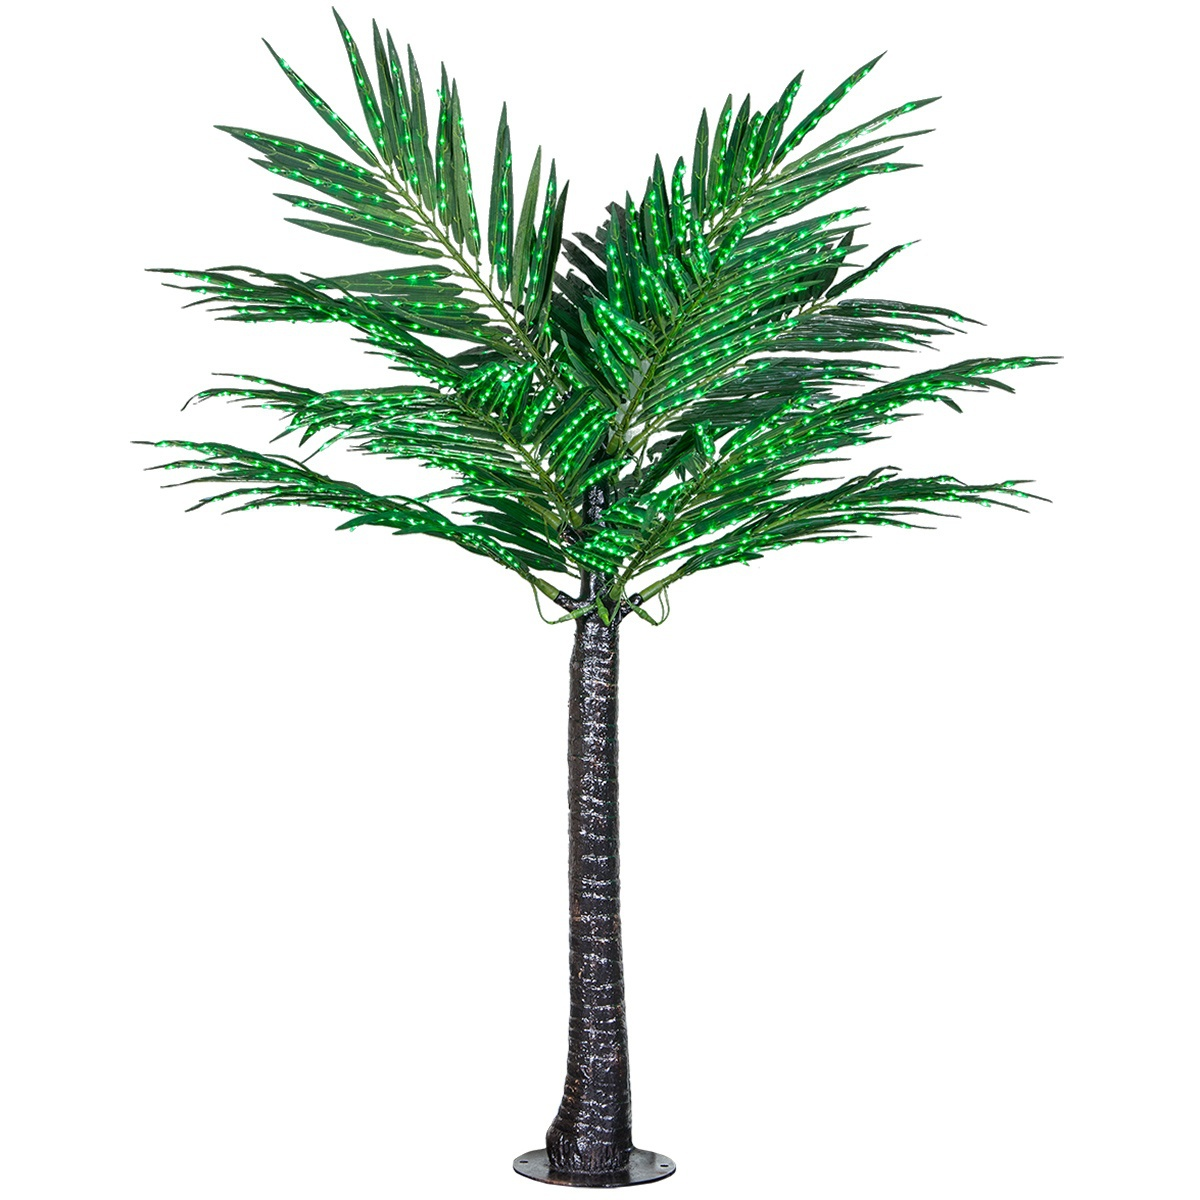 Commercial LED Lighted Palm Tree